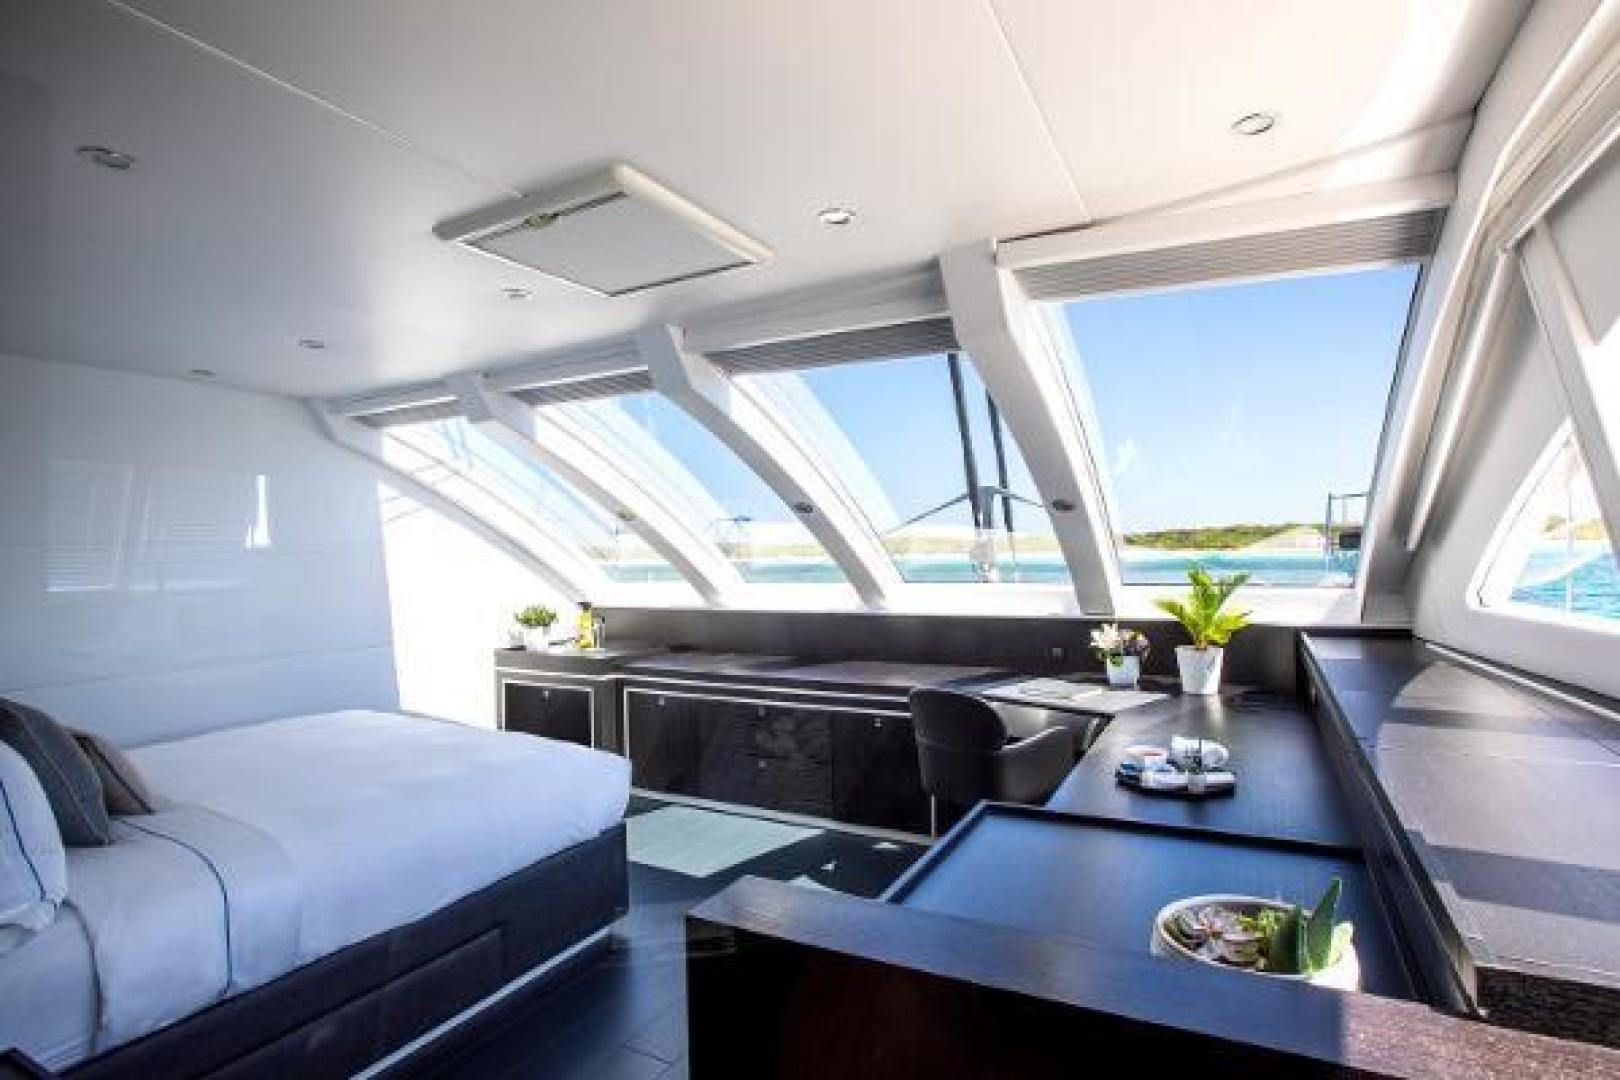 Catamaran-Blue Coast Yachts  2011-CARTOUCHE Antigua & Barbuda-1296551 | Thumbnail